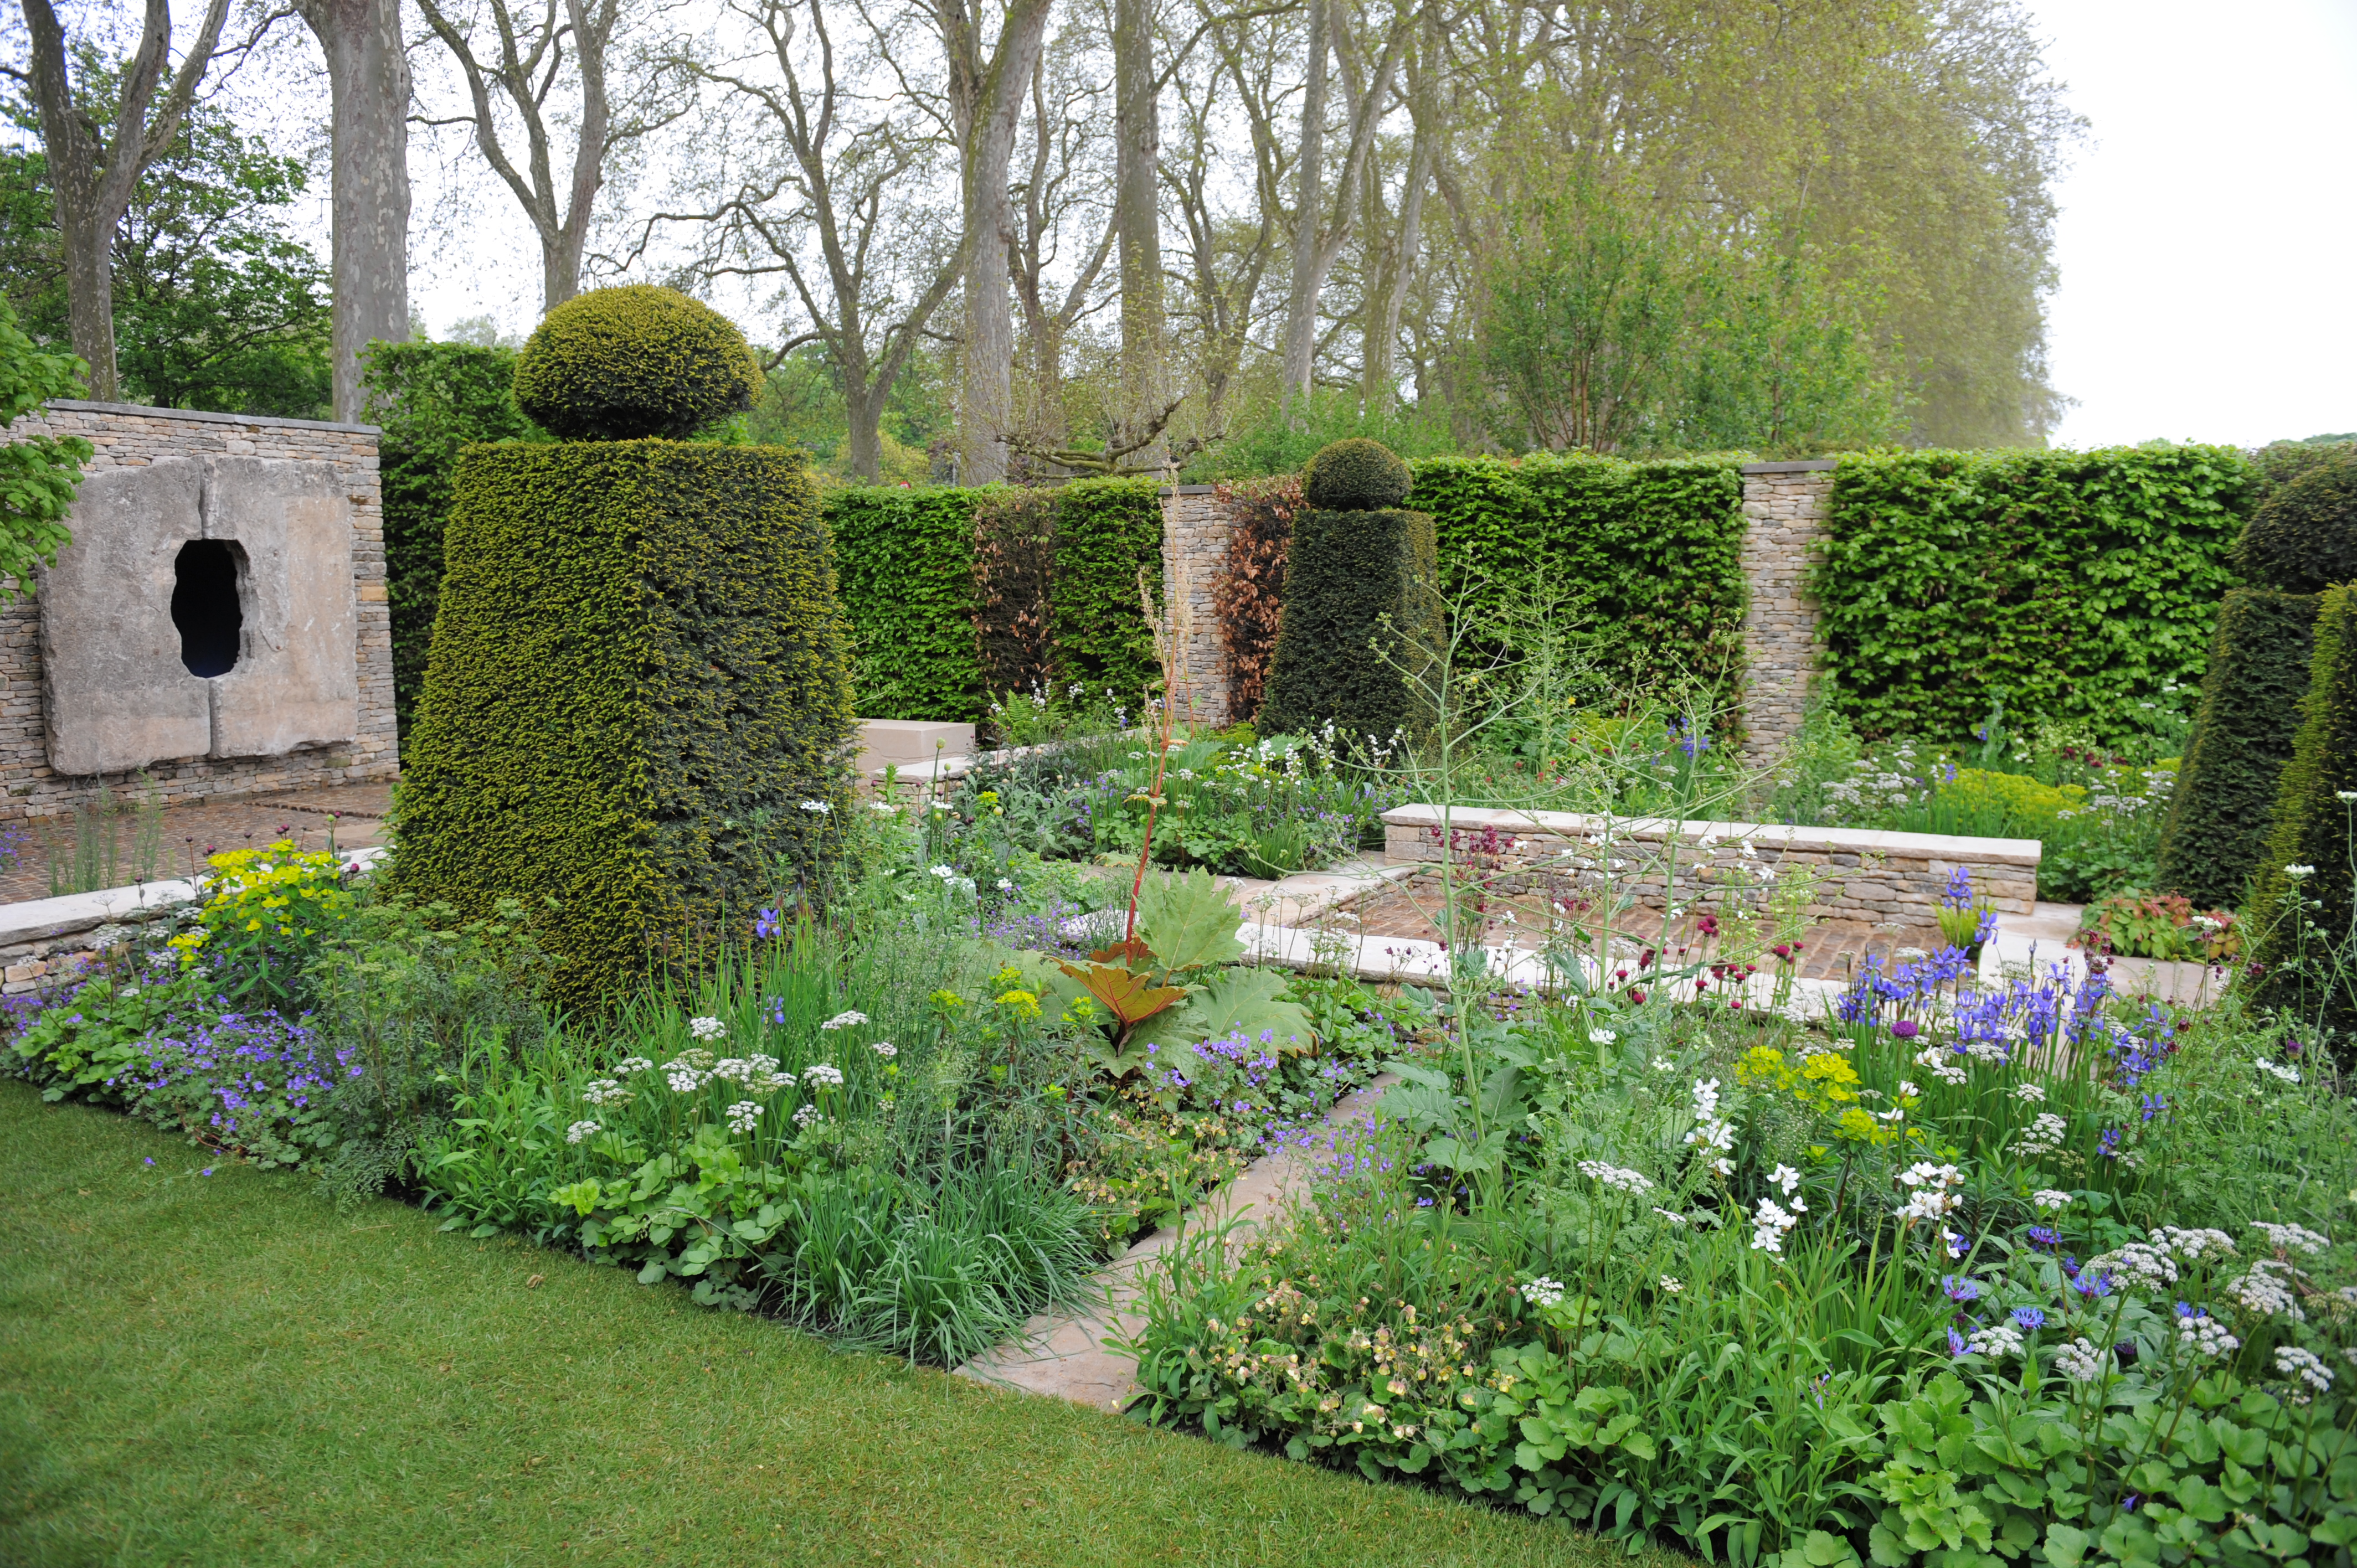 Brewin dolphin garden wins best in show at chelsea for Chelsea flower show garden designs